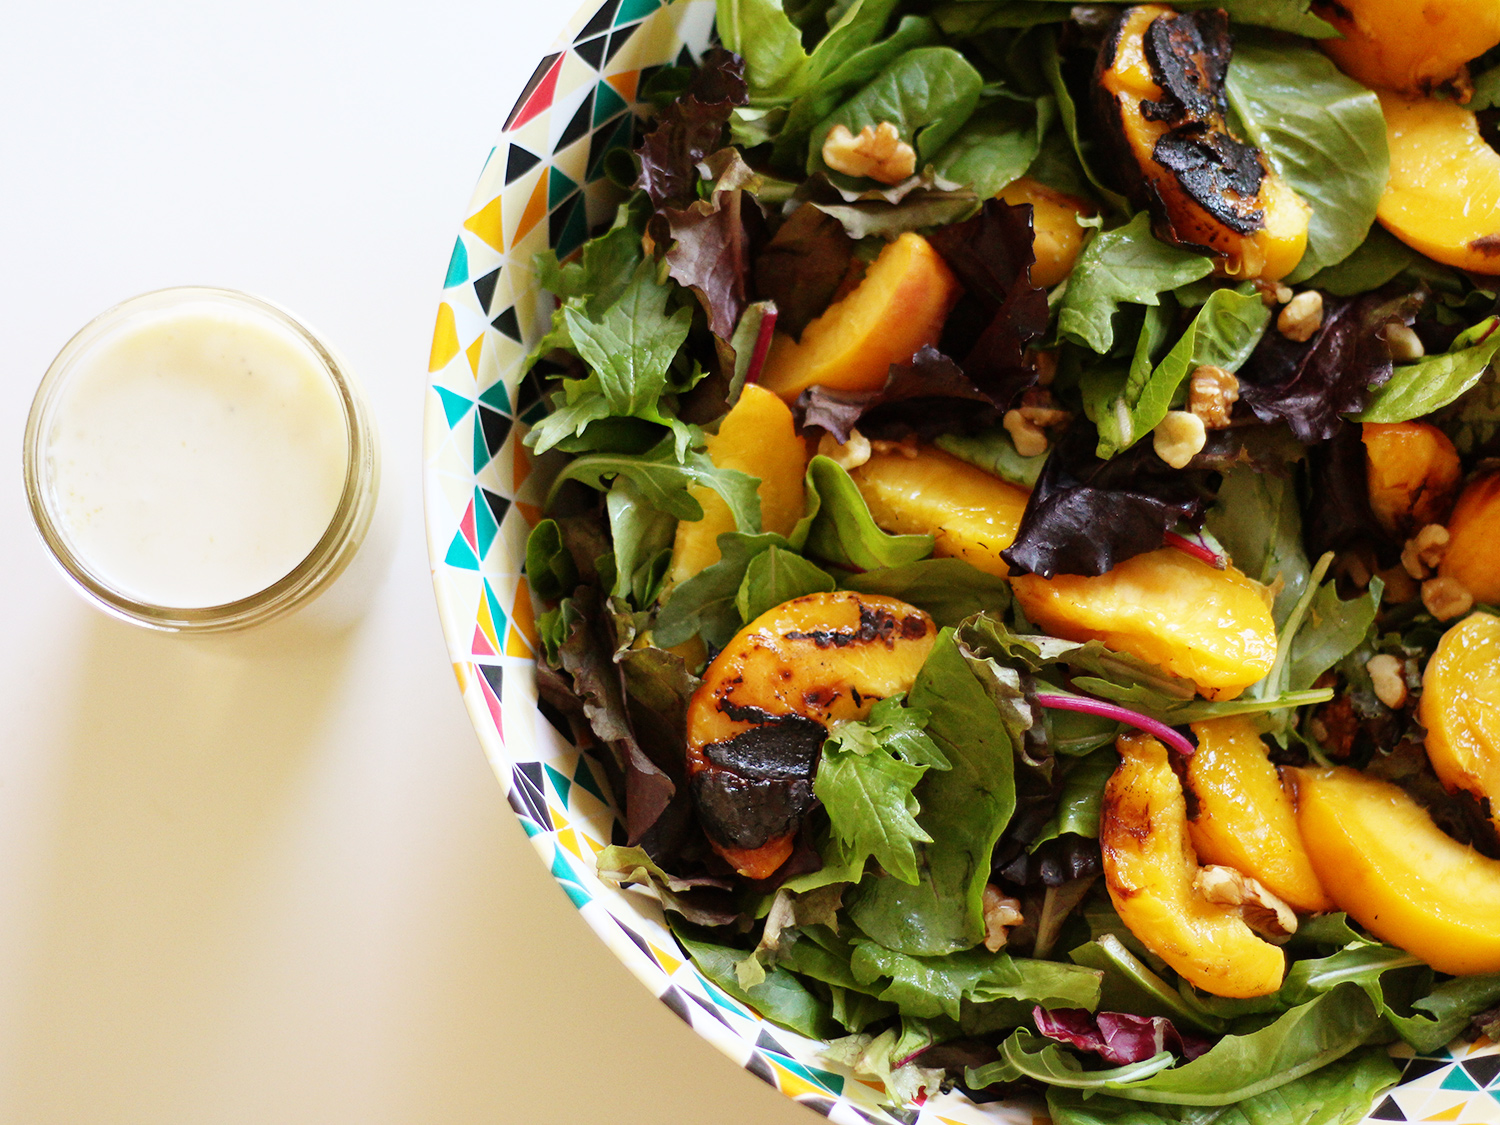 Grilled Peach Salad w/ Honey Goat Cheese Dressing // S.S. Heart